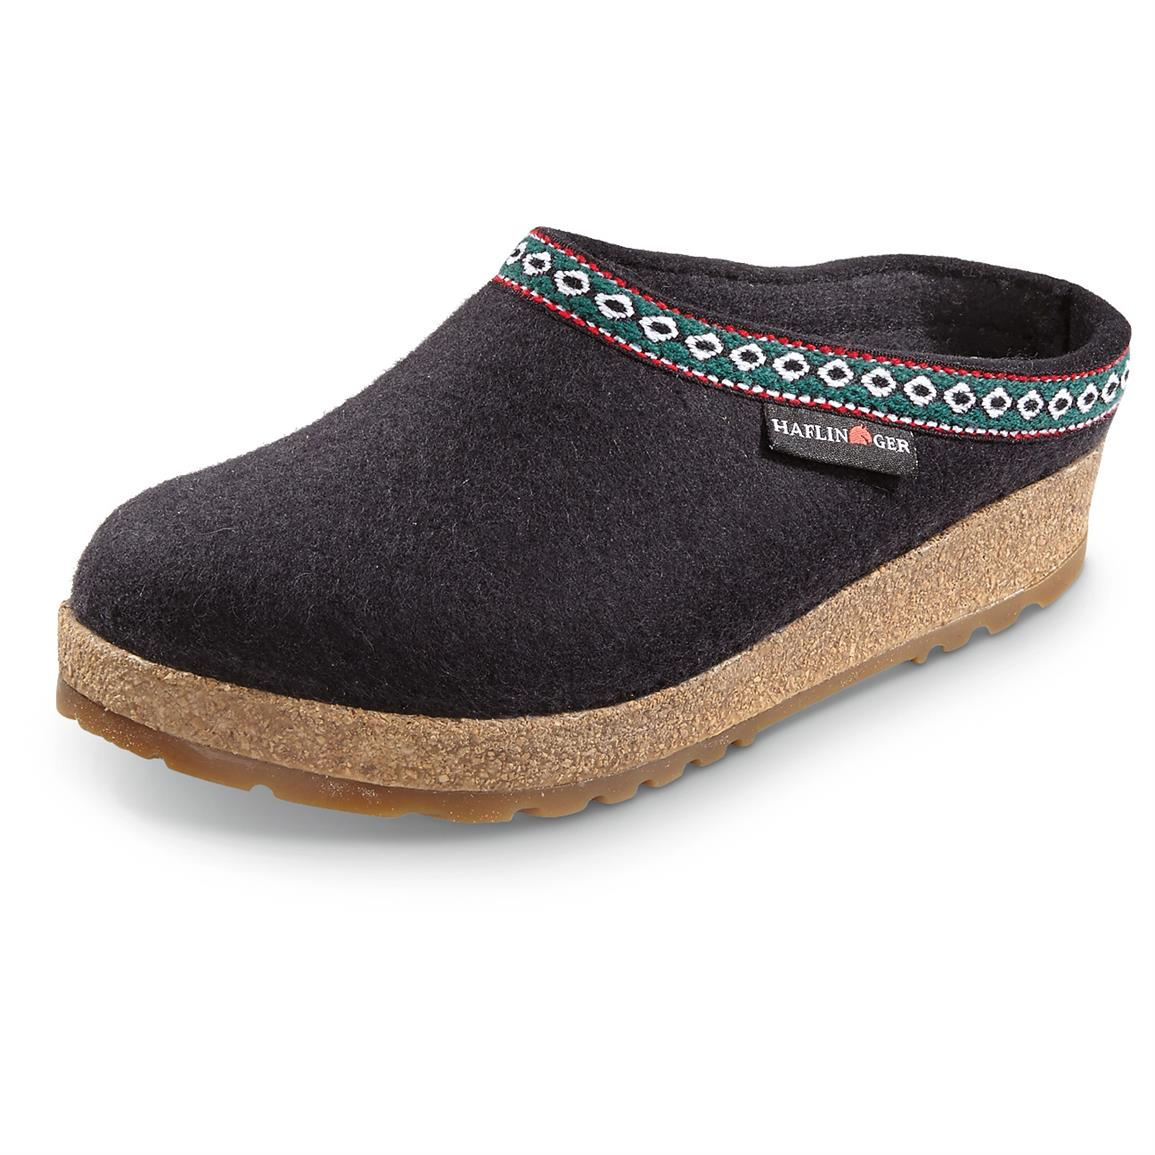 Men's and Women's Haflinger Classic Grizzly Clogs, Black